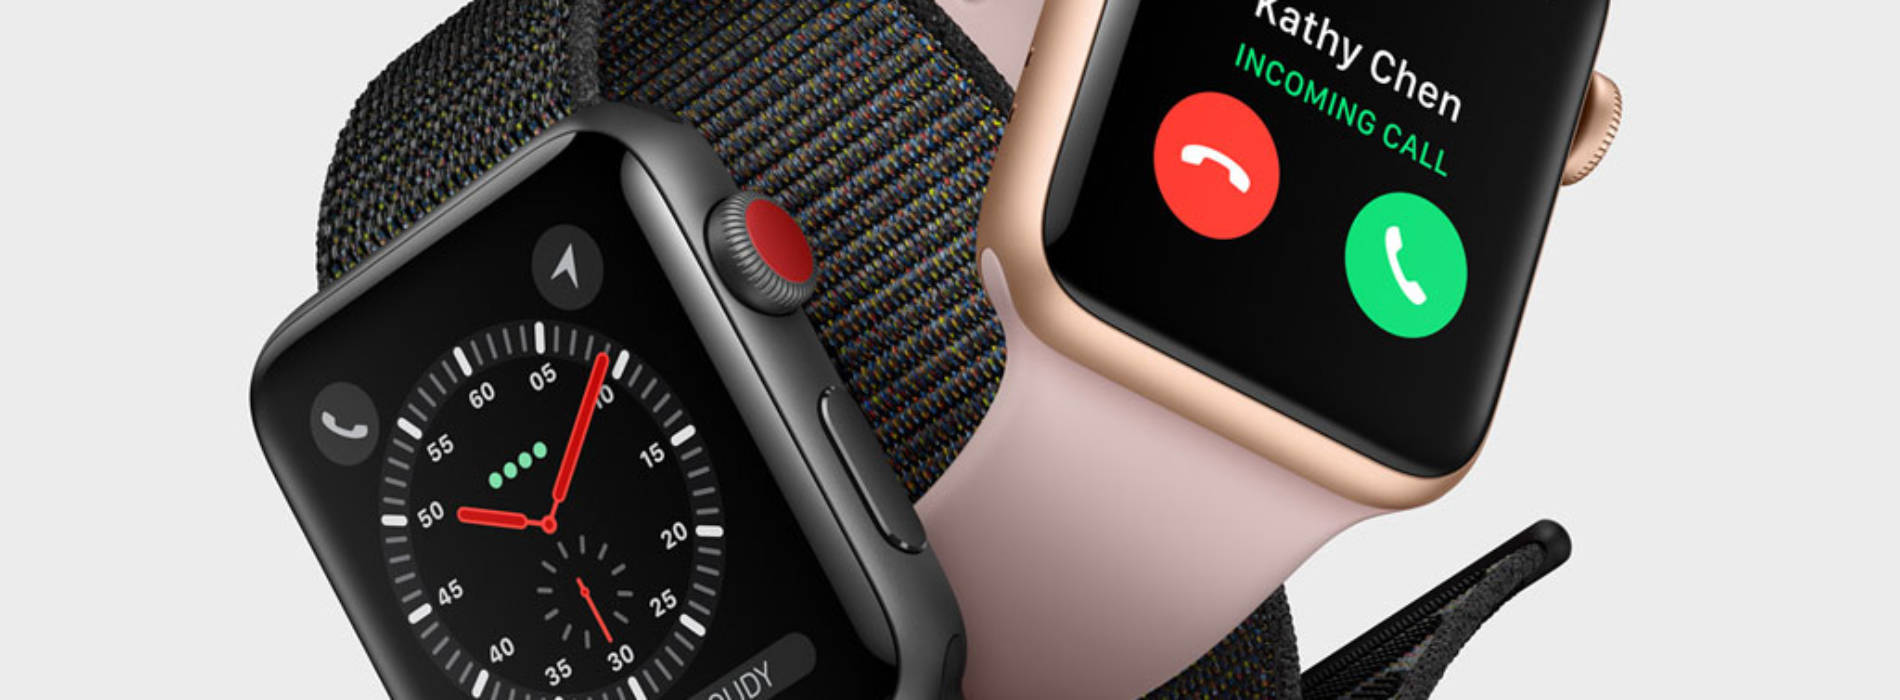 Apple Watch Series 3 y Apple TV 4K: Los otros lanzamientos